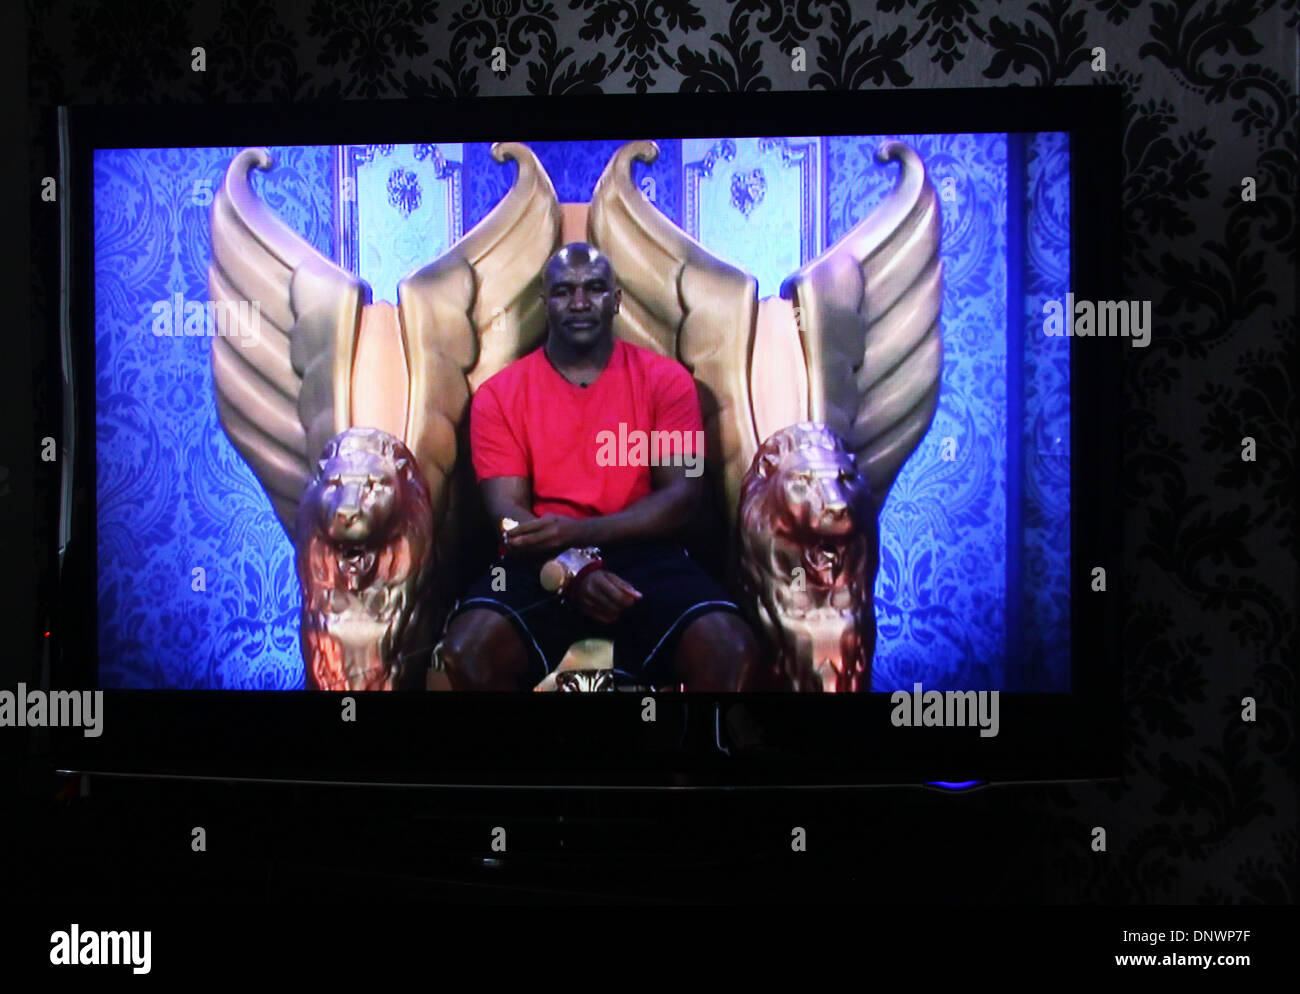 Celebrity Big Brother contestant and former world heavyweight boxing champion Evander Holyfield makes comments that being gay 'ain't normal' sparking backlash on social media. Programme broadcast on 5 January 2014. Holyfield is admonished by Celebrity Big Brother producers in the diary room. - Stock Image